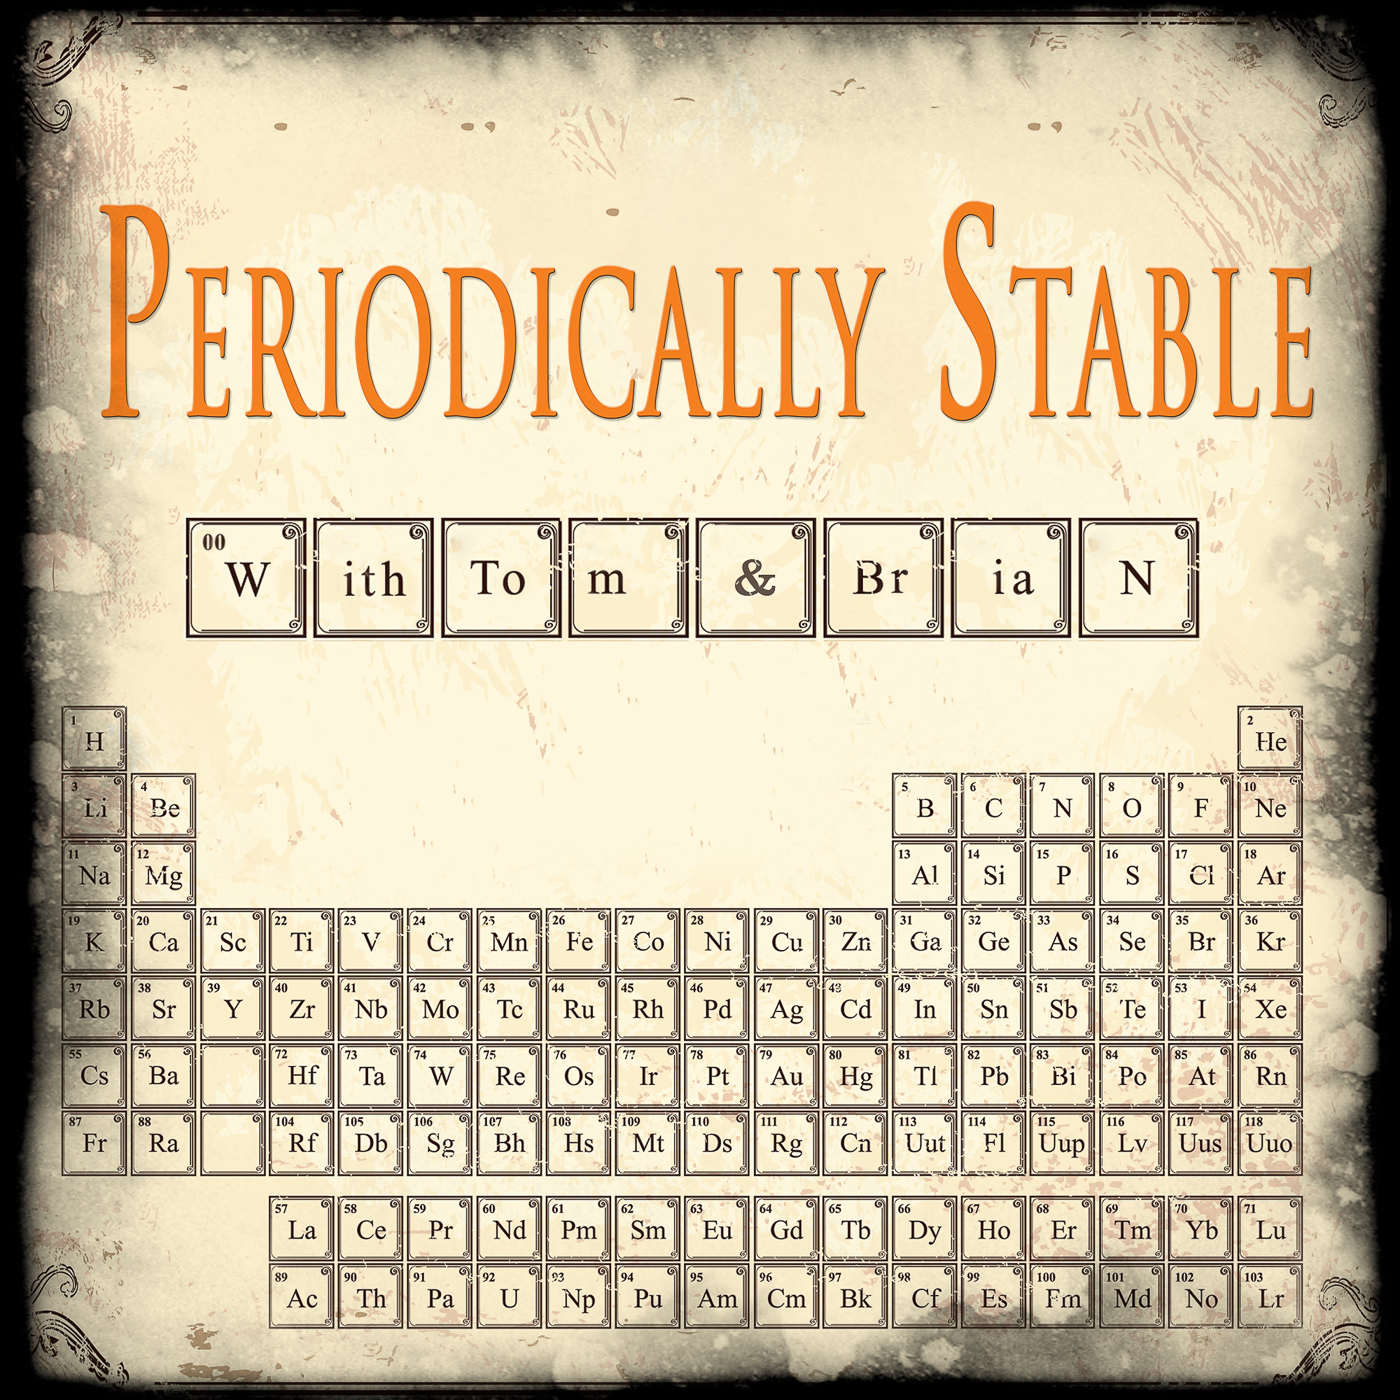 Periodically Stable